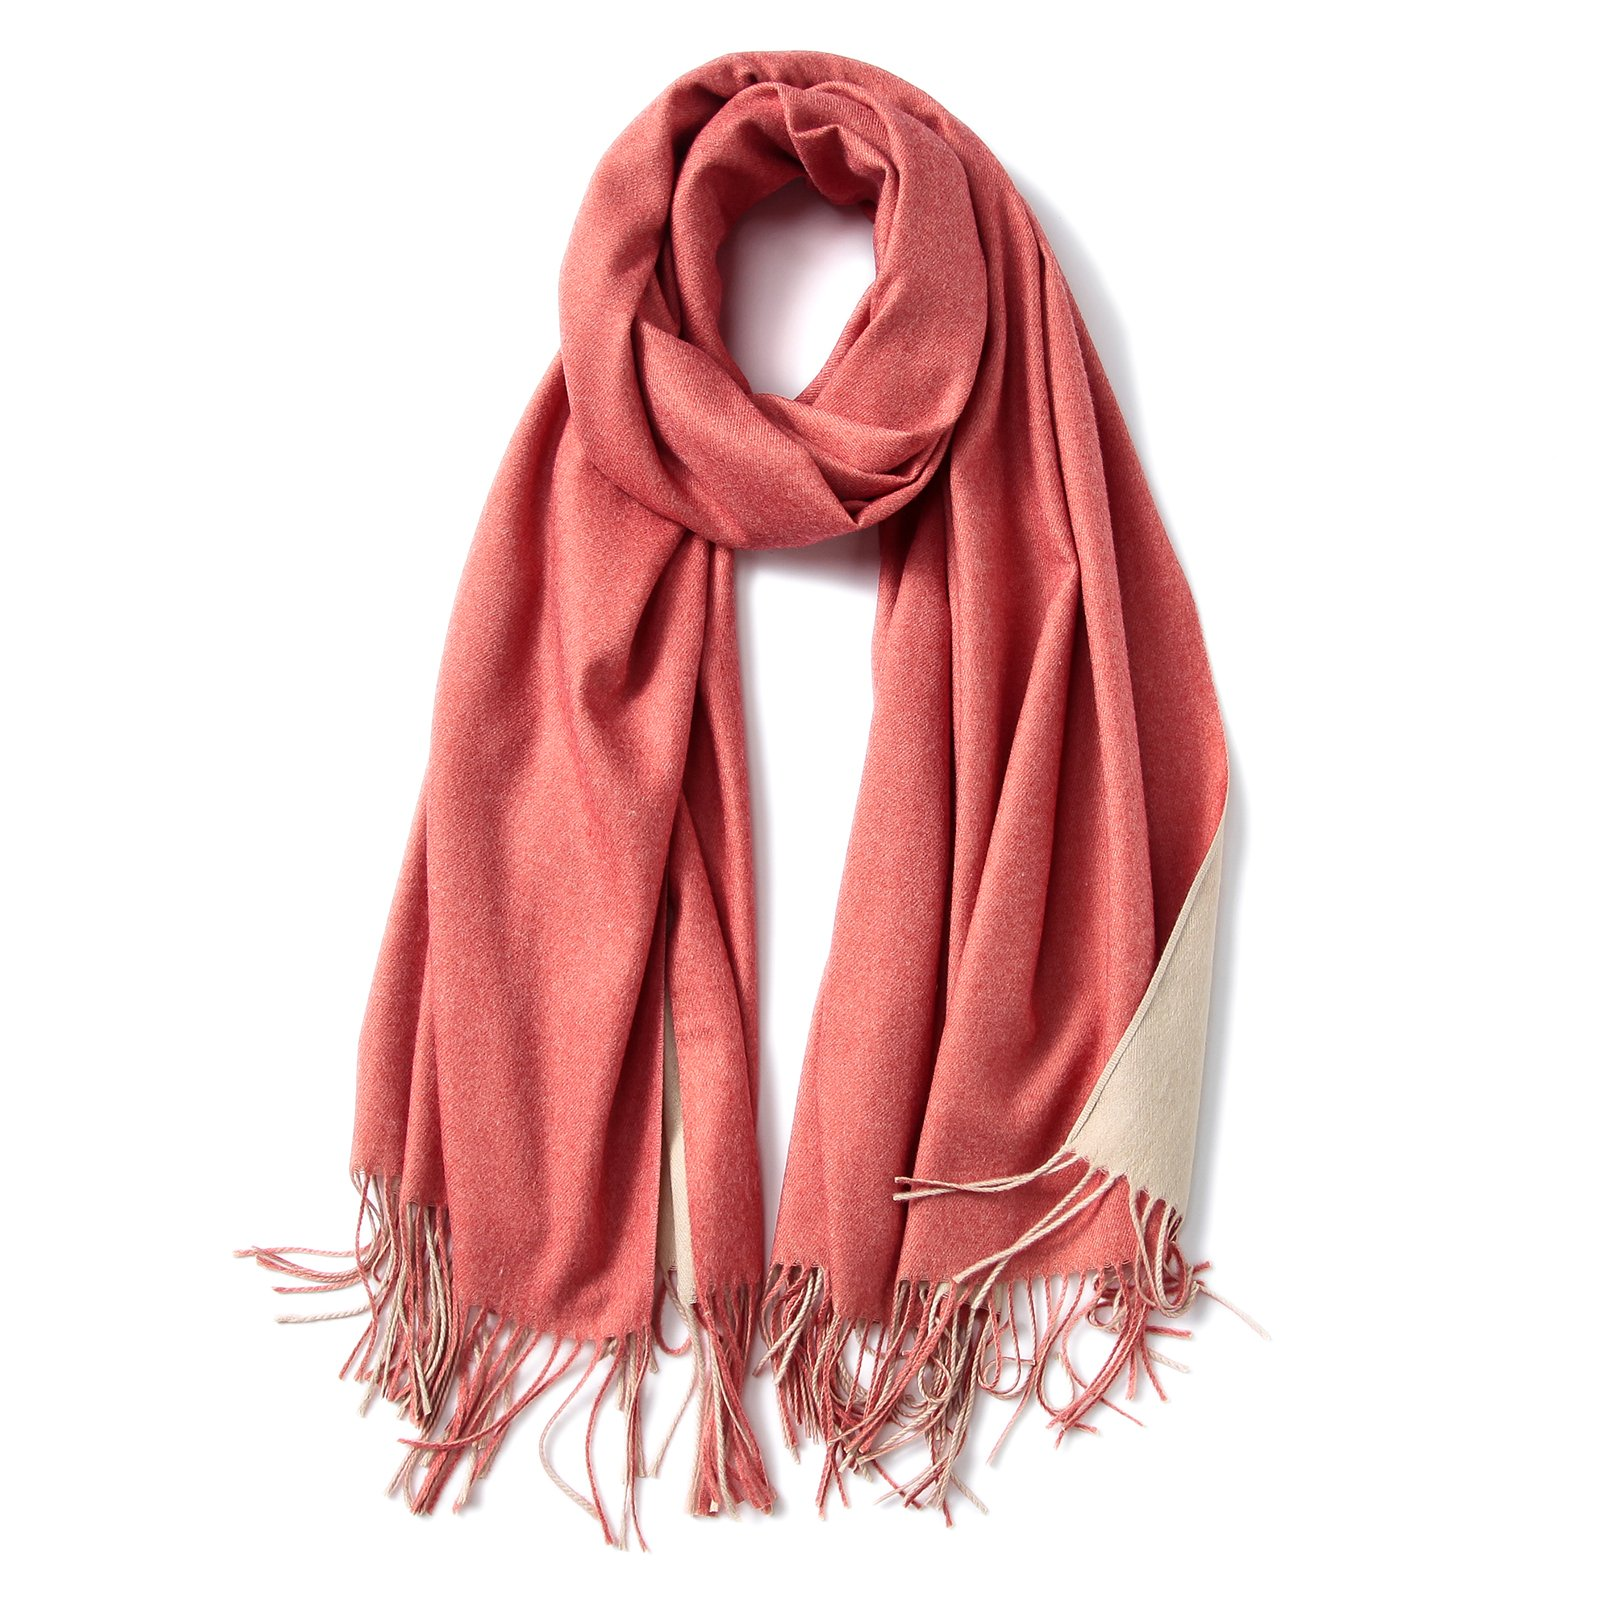 FORTREE Cashmere Feel Scarf - Lightweight Scarfs for Women Large Soft 2 Tone Shawls and Wraps (10 Colors Available)